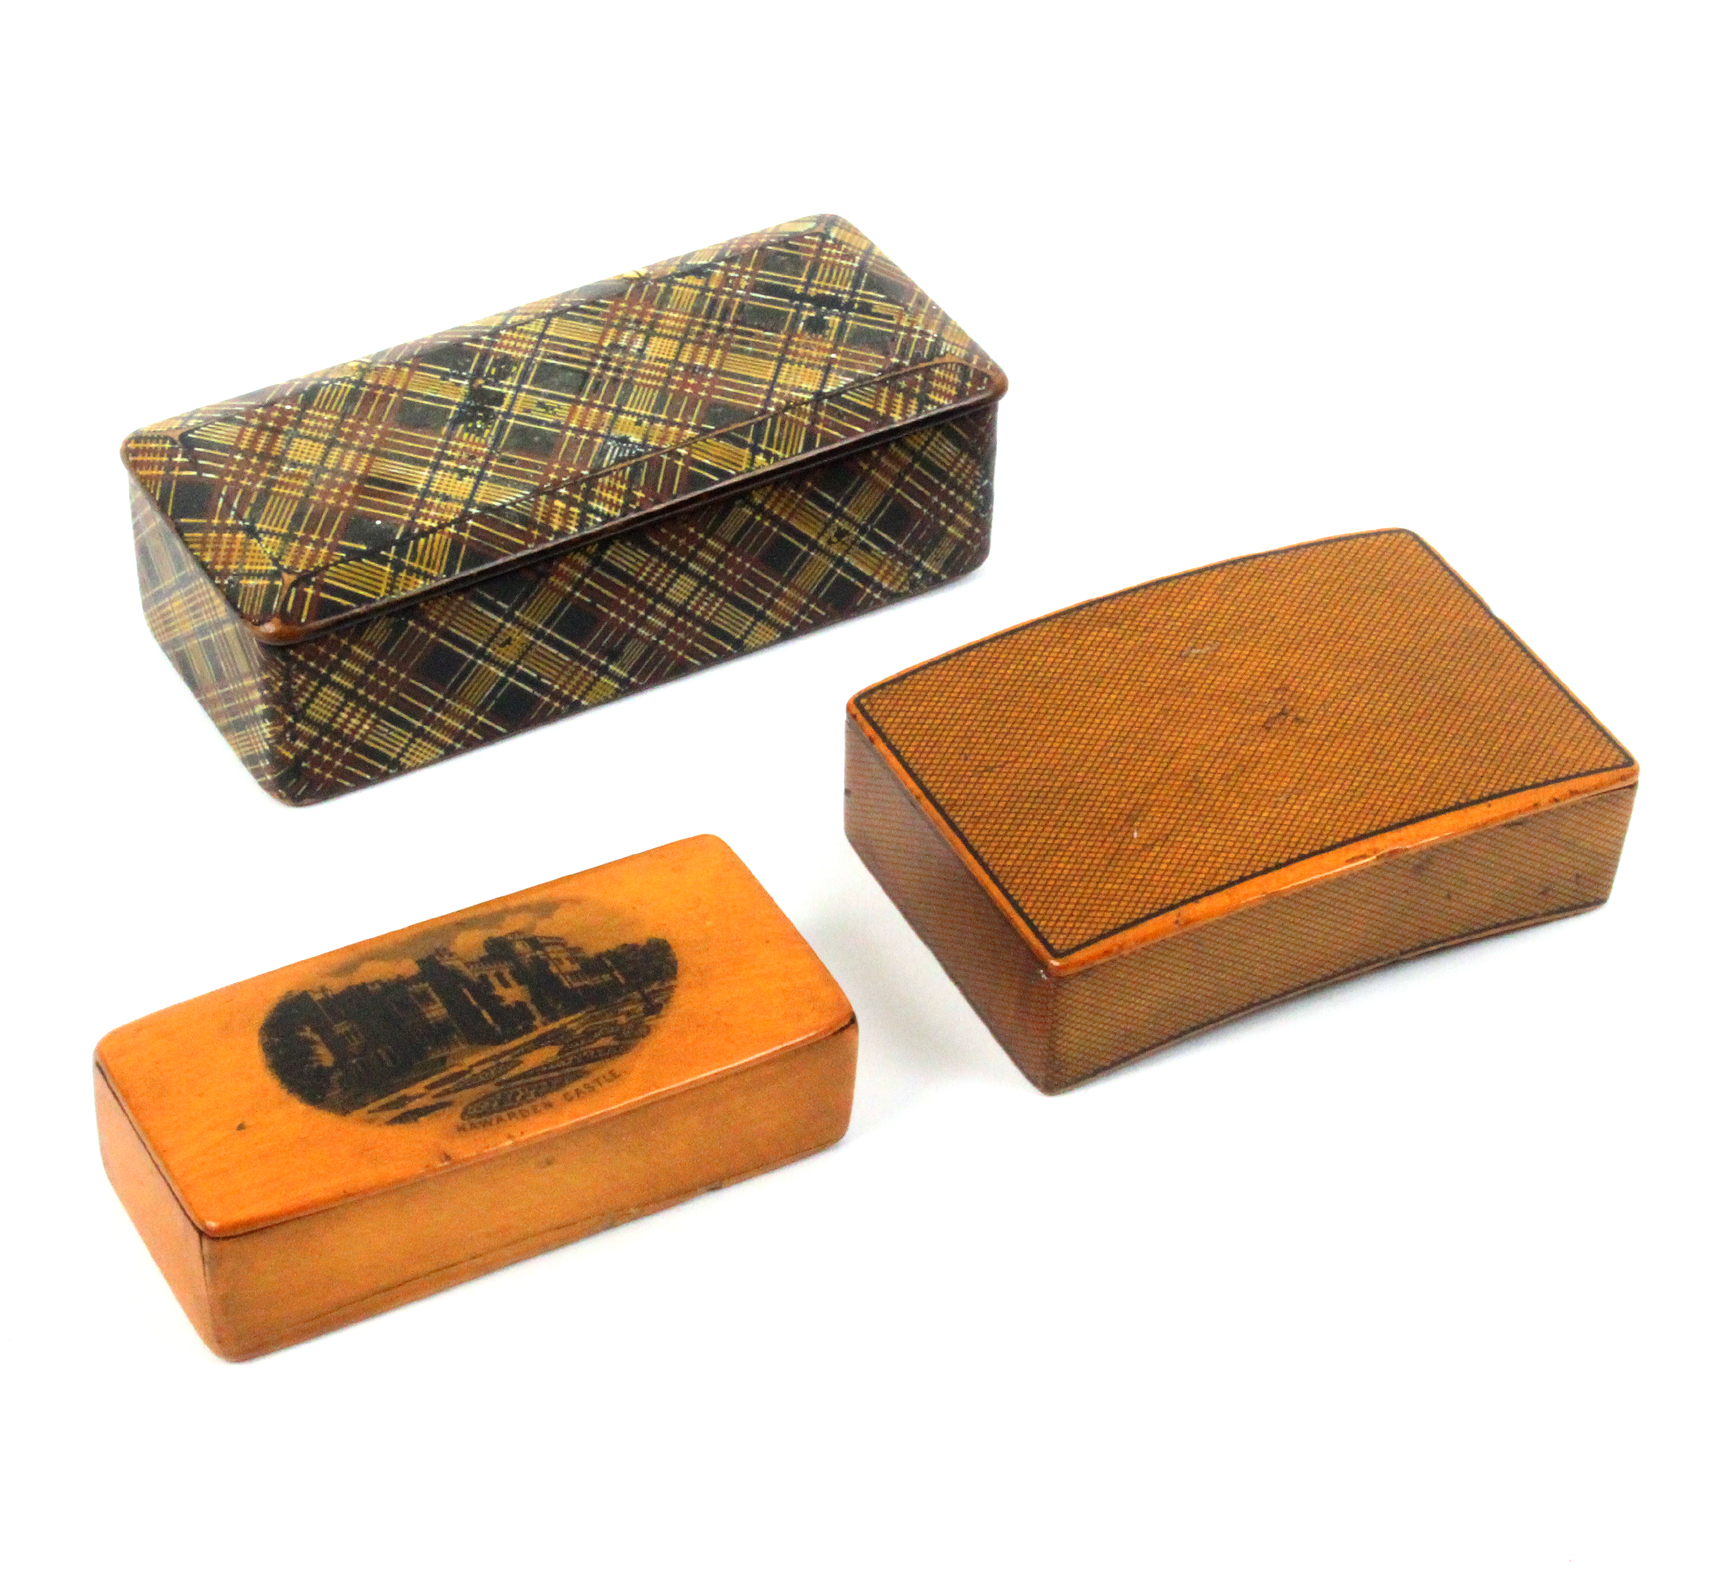 Mauchline ware - three snuff boxes - comprising a curved example in cross hatched pen work, full